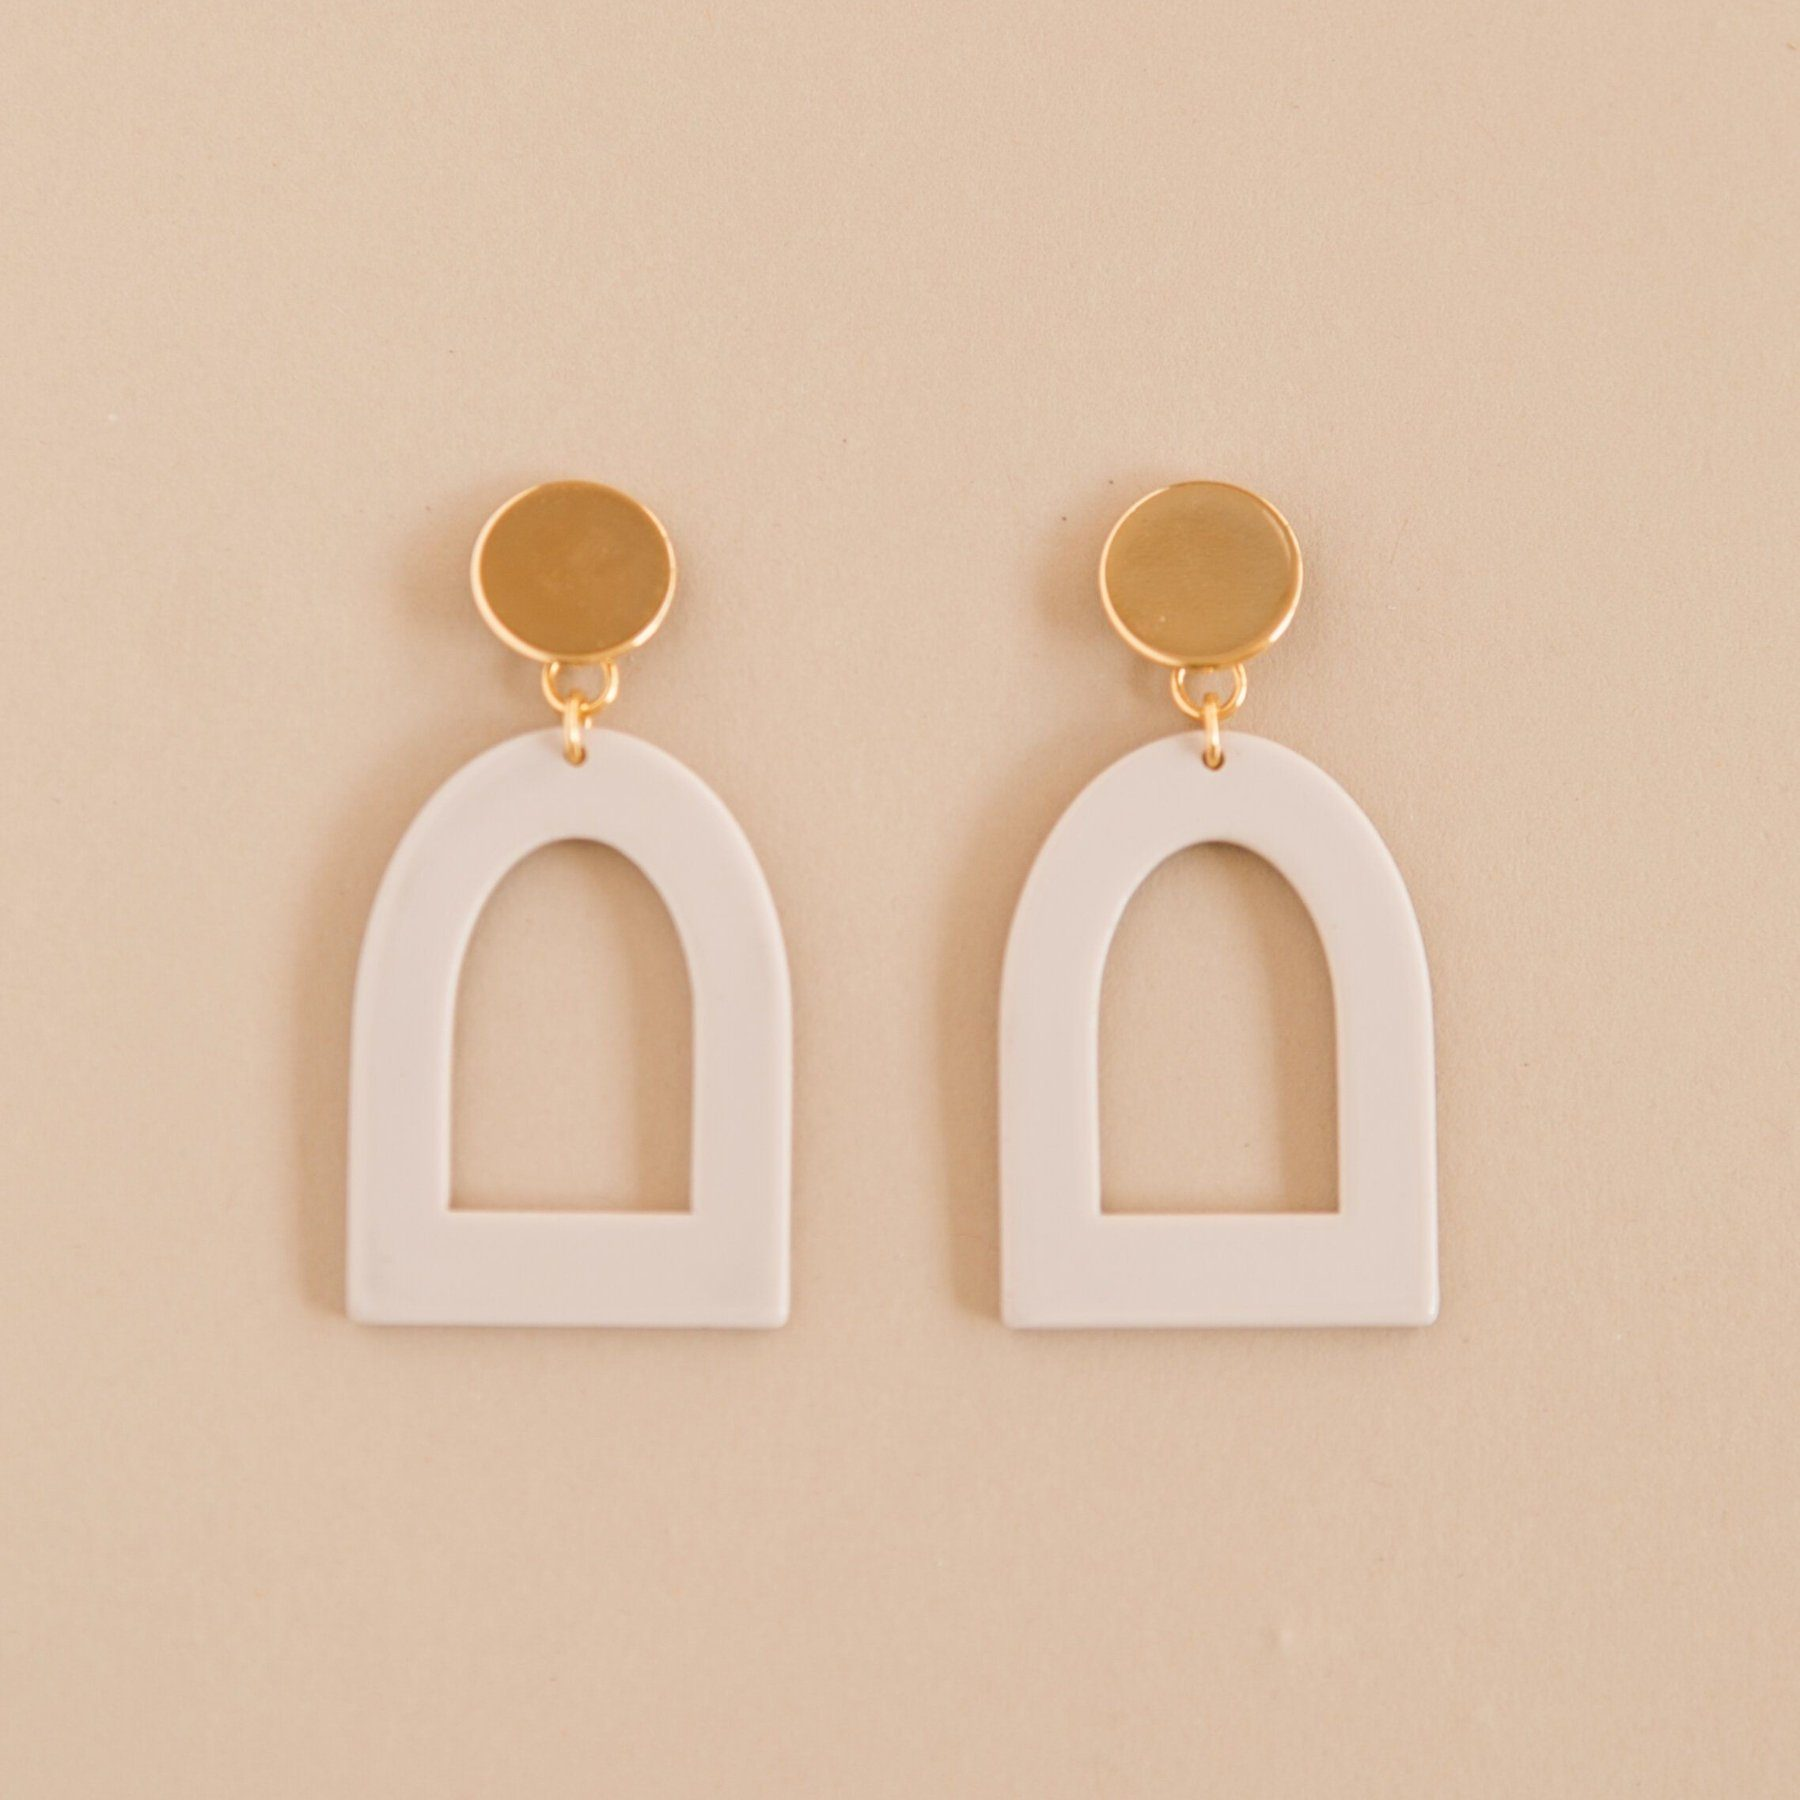 Window Earrings in Glossy Bisque Acrylic